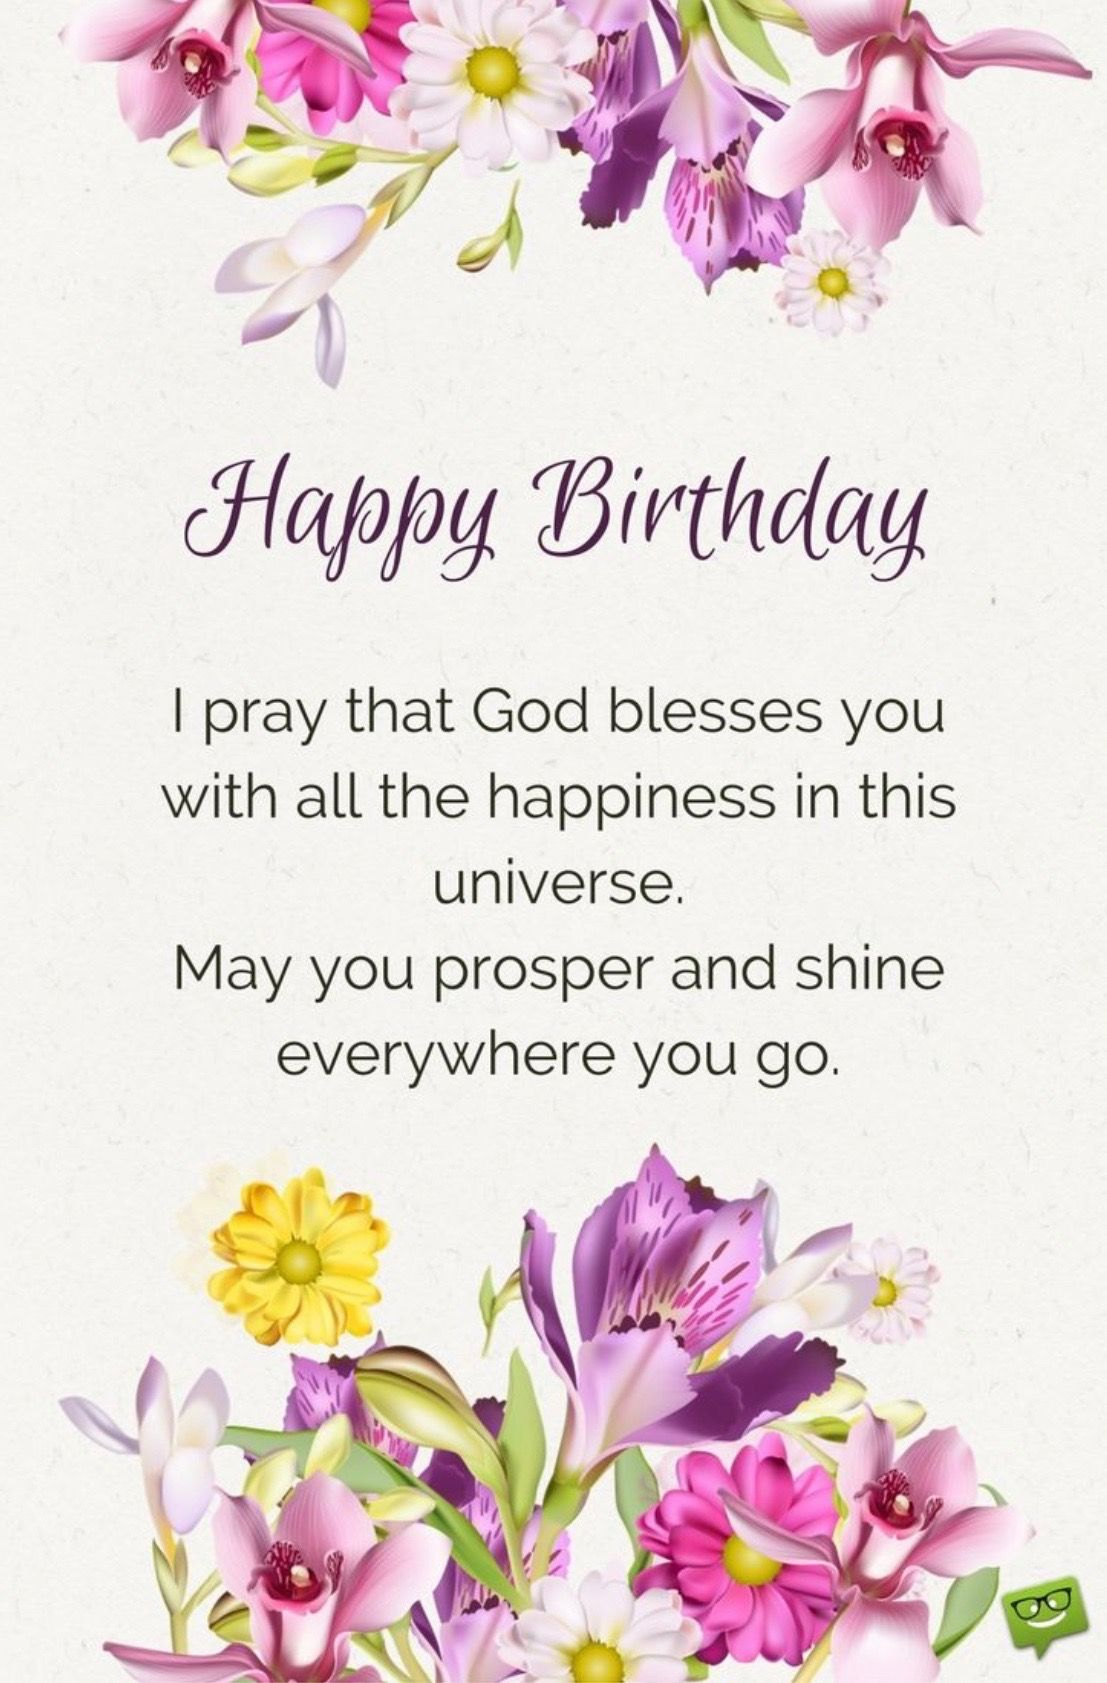 Pin by Brenda Townley on Happy Birthday Birthday